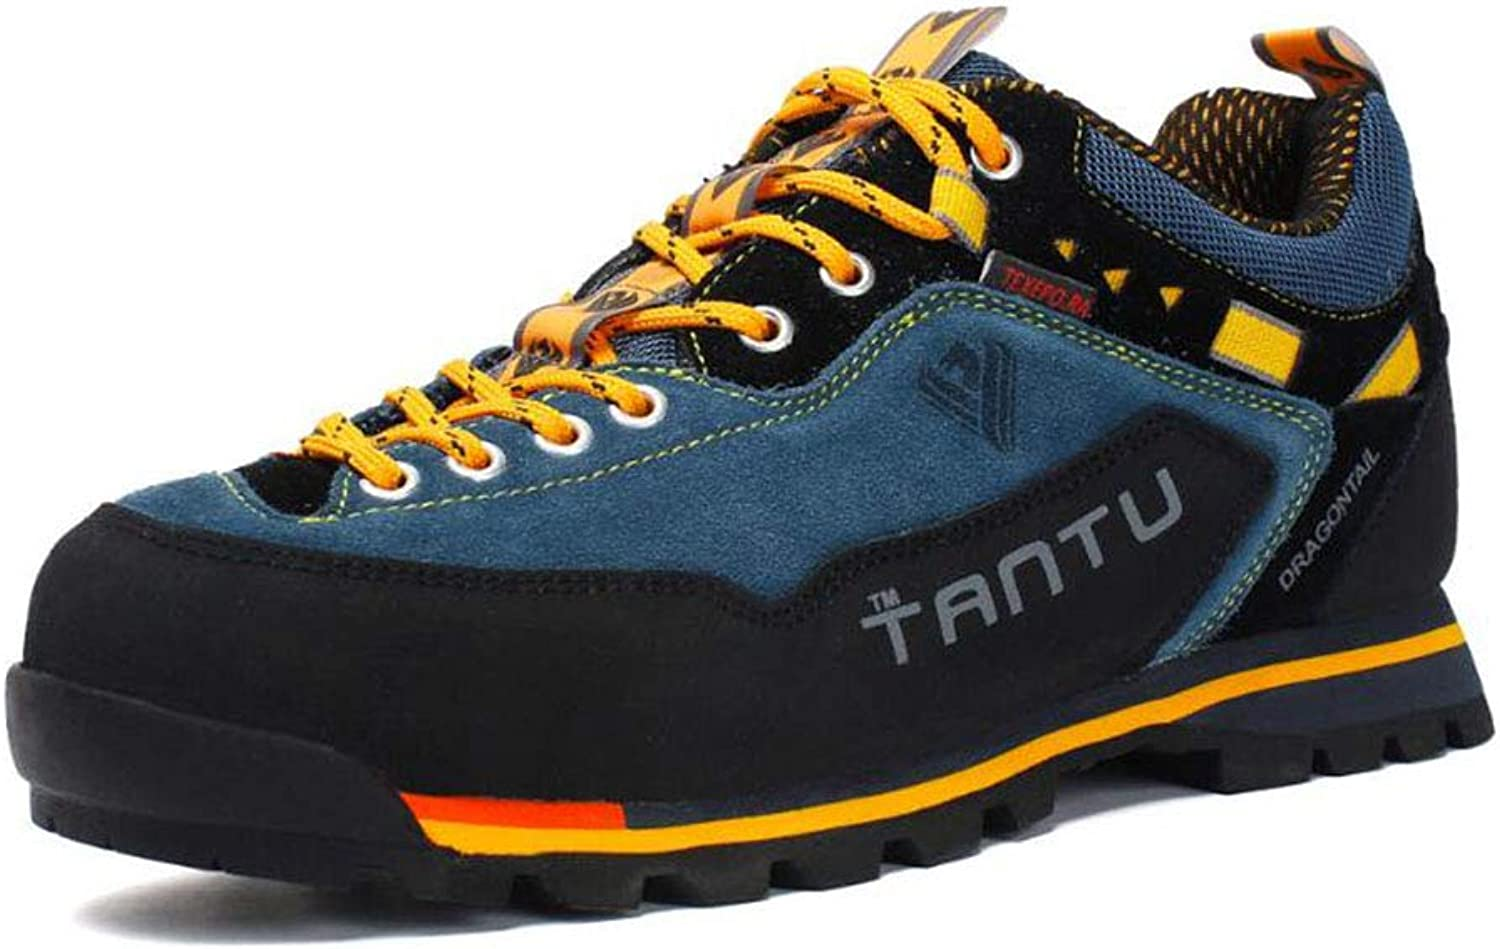 Men's Boot,High-Top Sneakers,Hiking shoes Mountaineer shoes Rubber Hiking Leisure Sports Anti-Slip, Anti-Shake,Casual Travel,Running shoes,Backcountry Waterproof,A,43